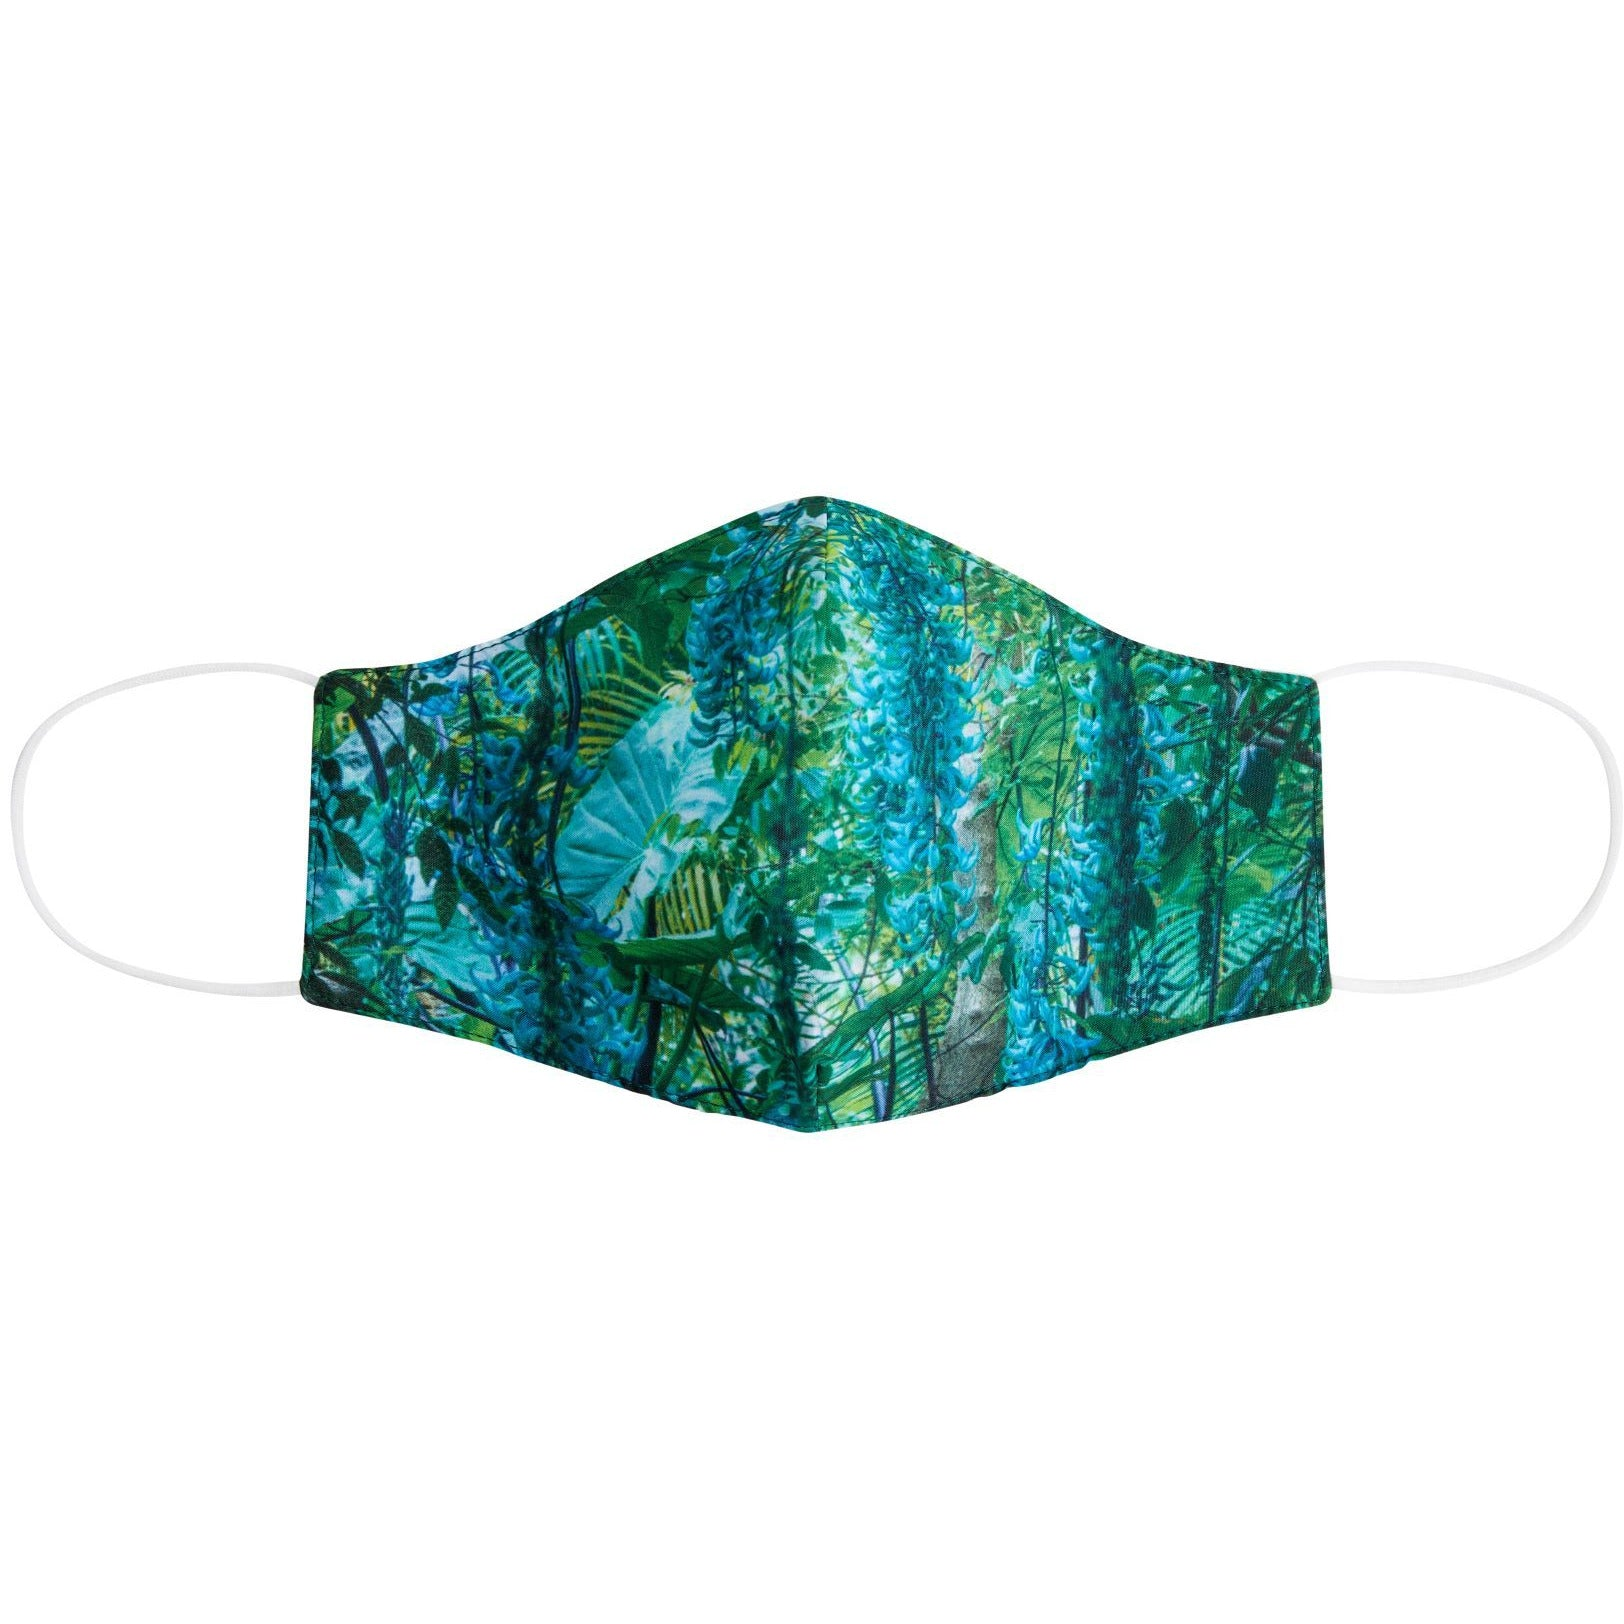 Featured image for the project: Jade Vine - Face mask